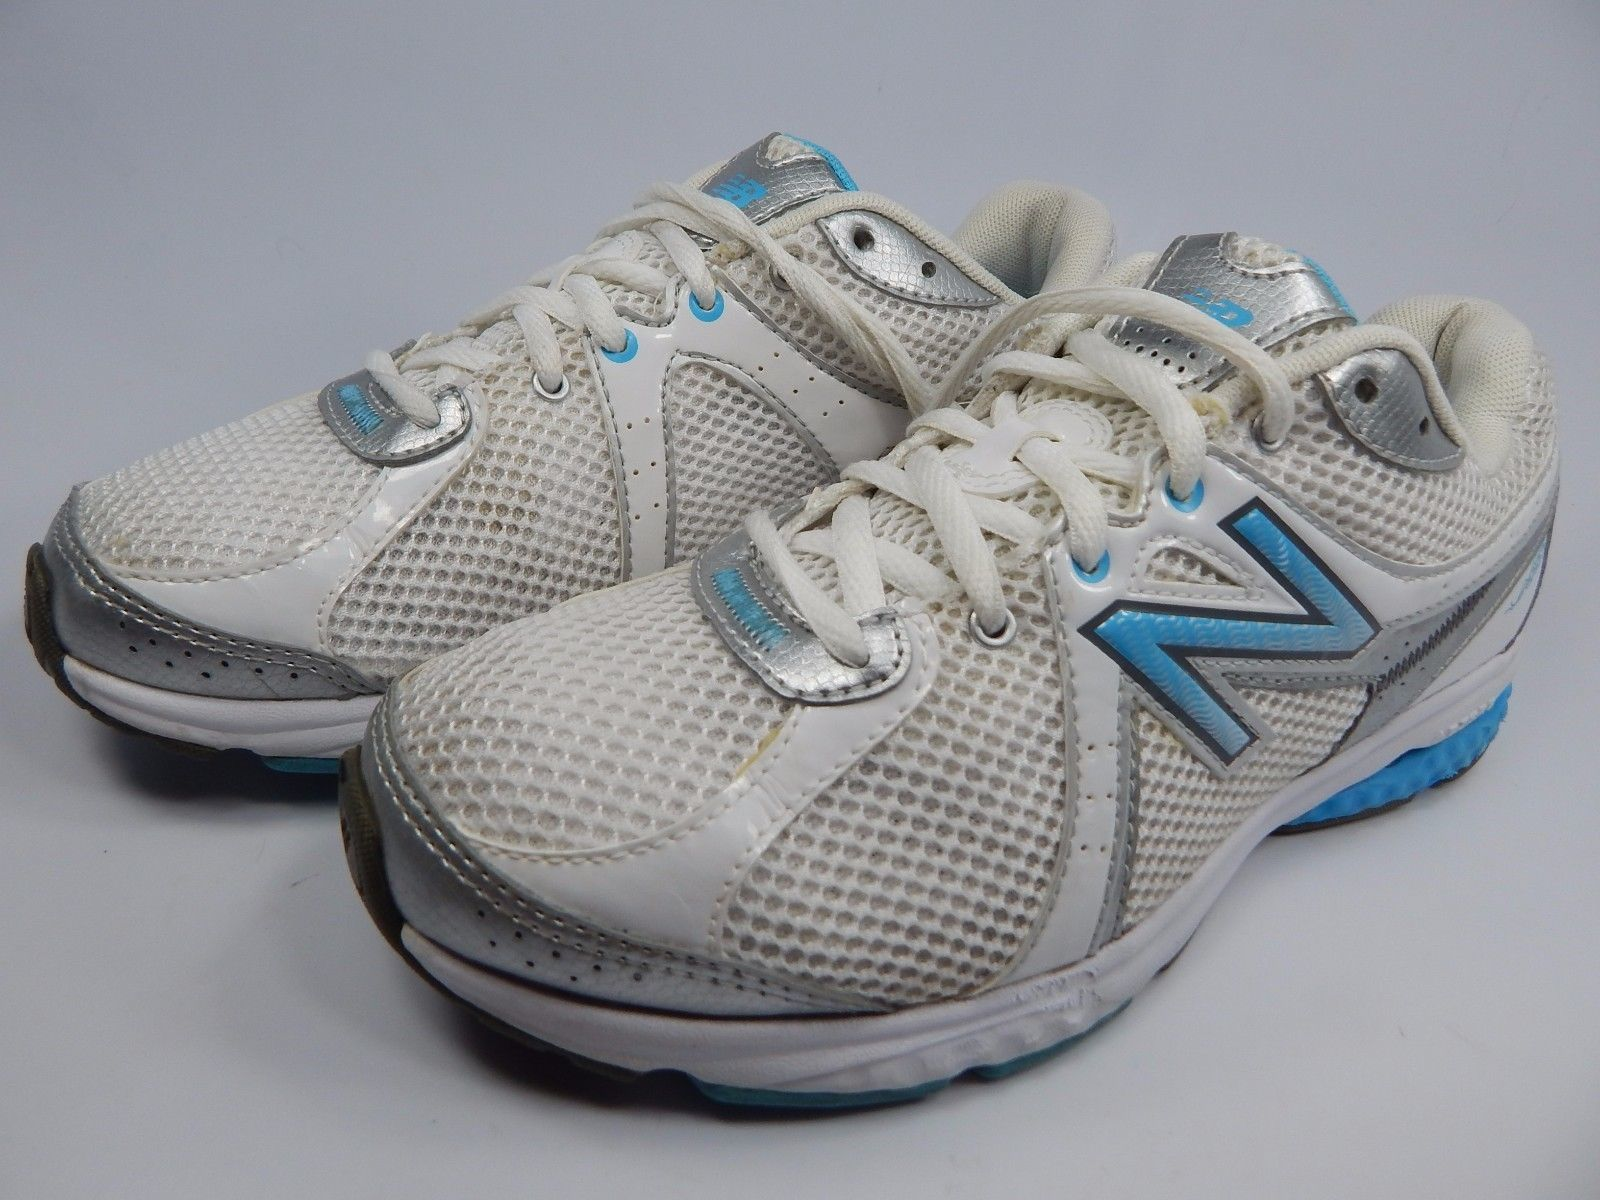 New Balance 665 Women's Walking Shoes Size US 8 D WIDE EU 39 White WW665WB